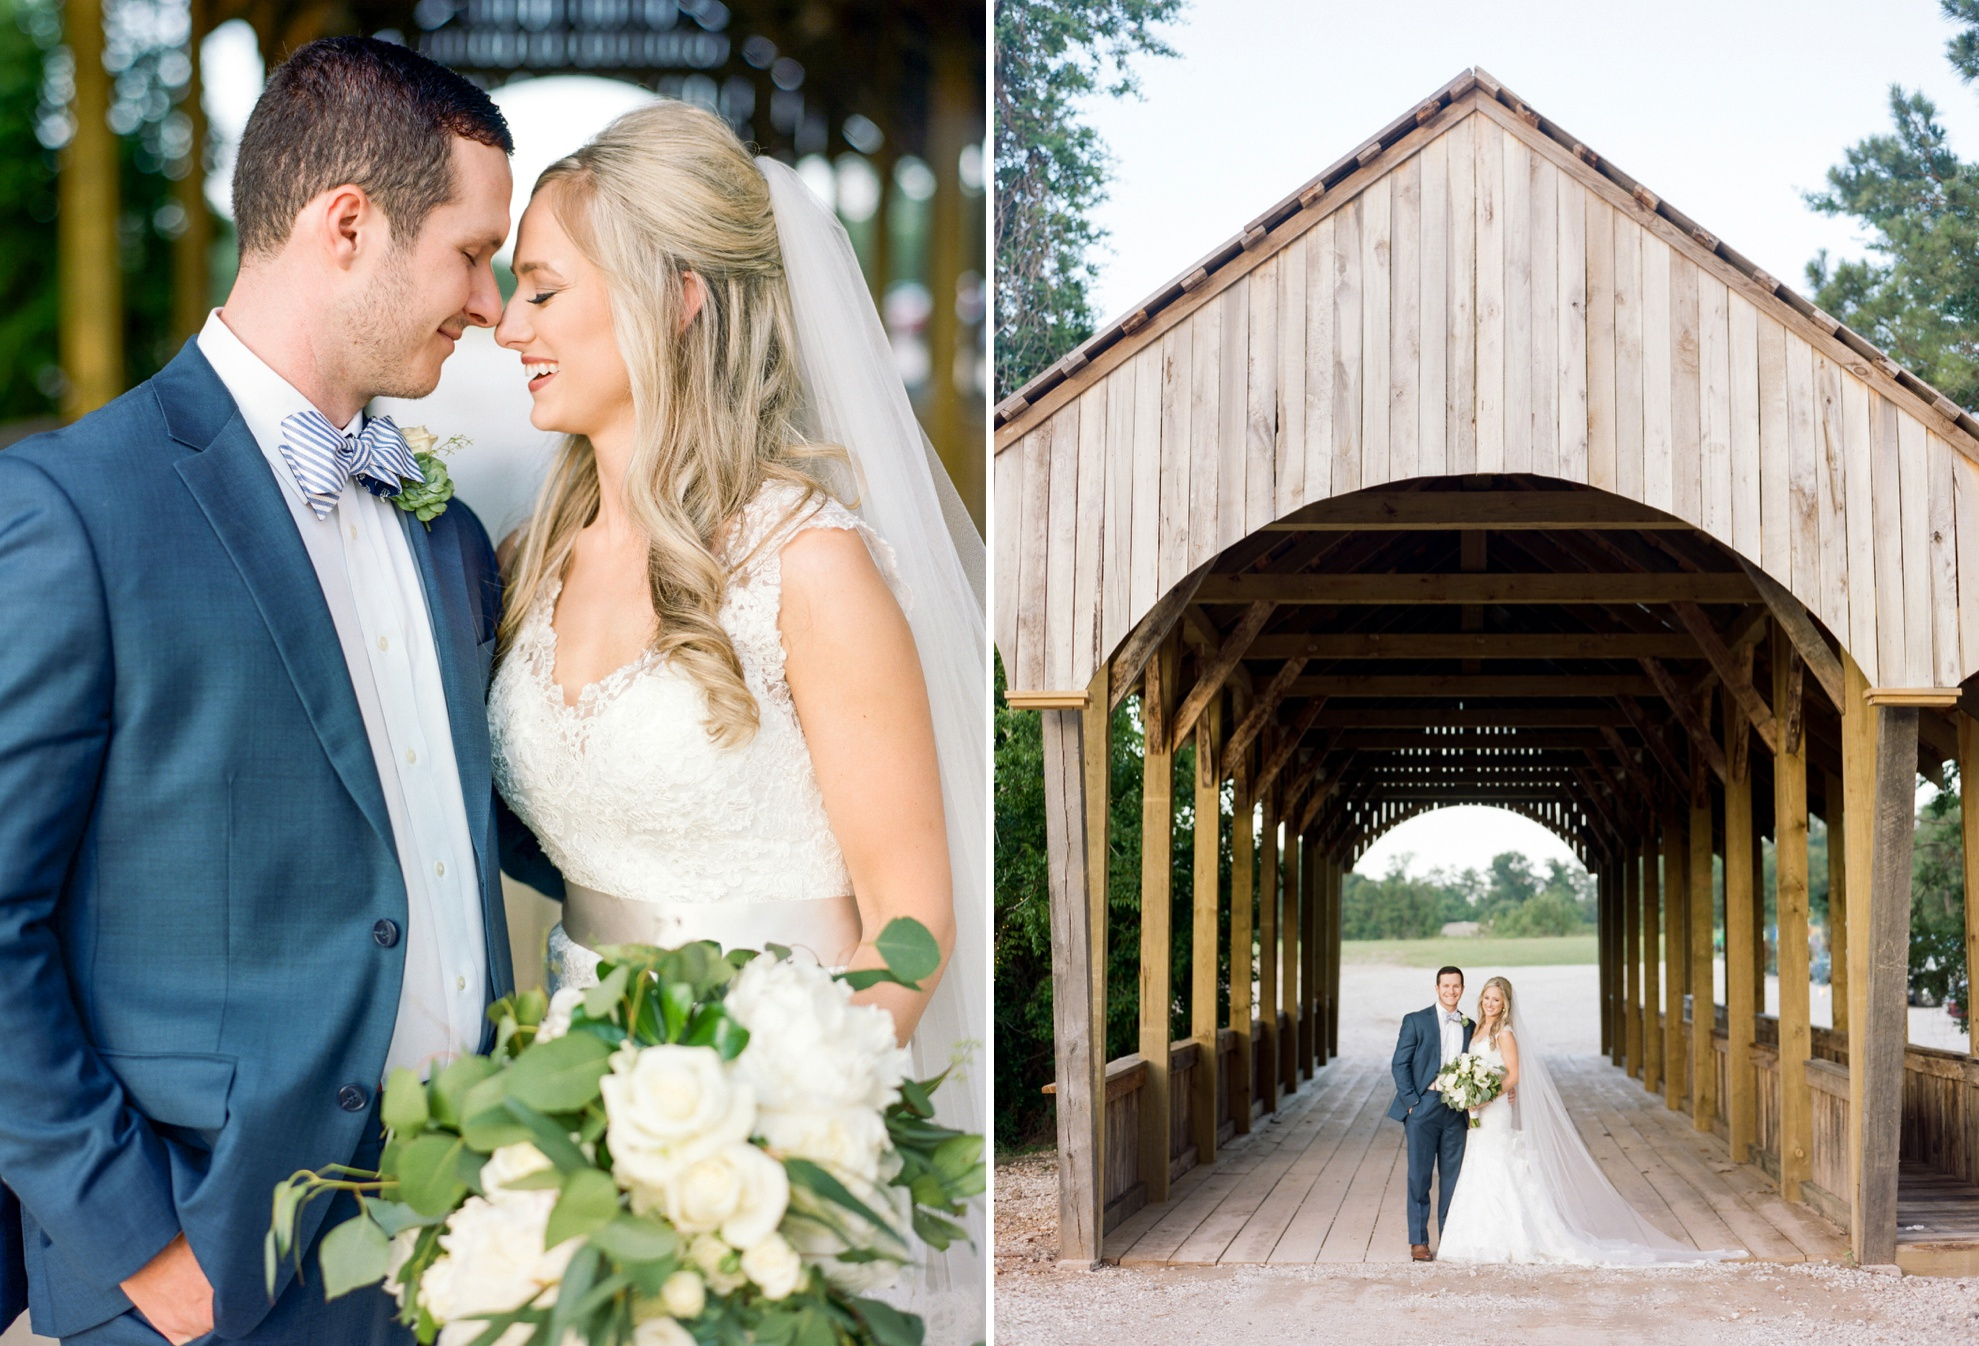 Big-Sky-Barn-Wedding-Ceremony-Reception-Photographer-Houston-Dana-Fernandez-Photography-10.jpg